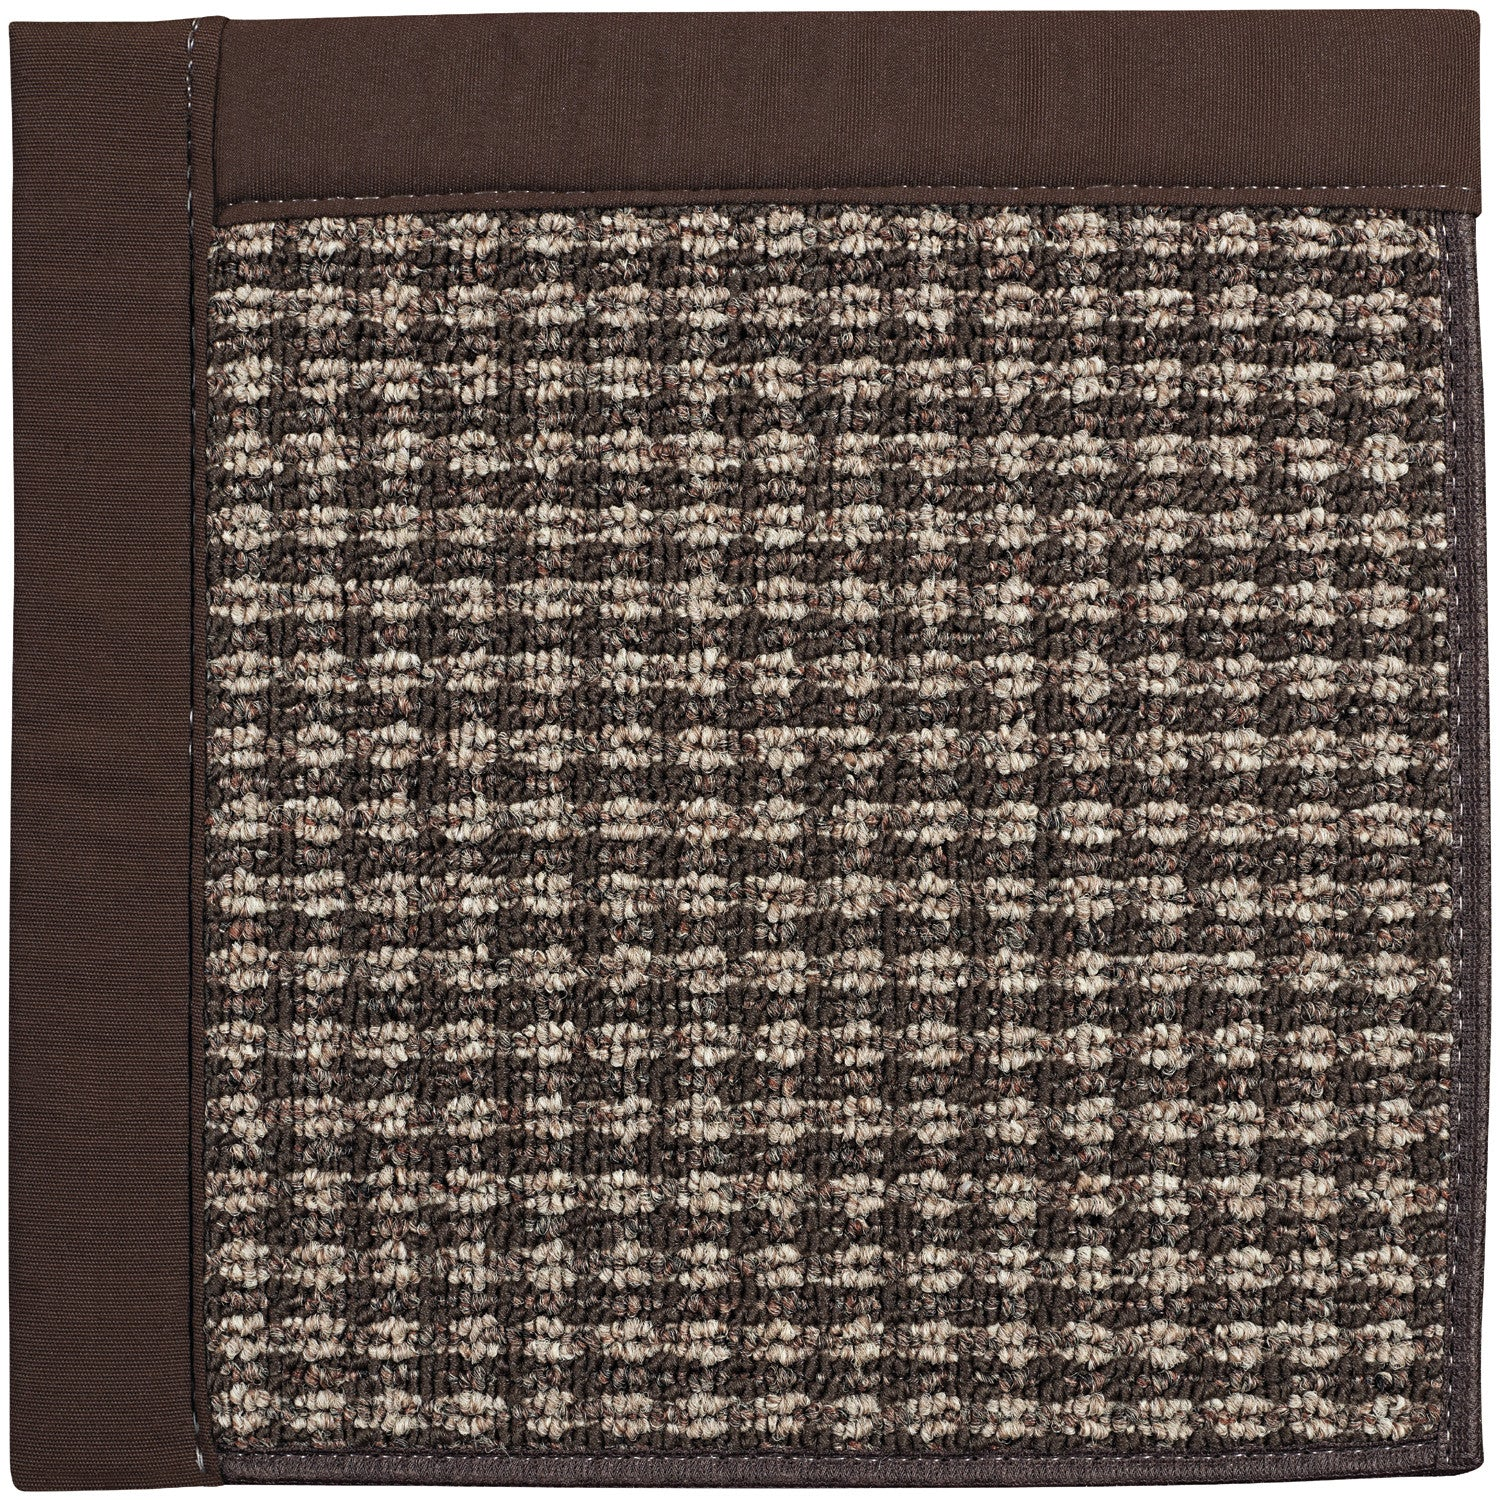 Capel Heartfelt 2038 Brown 787 Area Rug main image